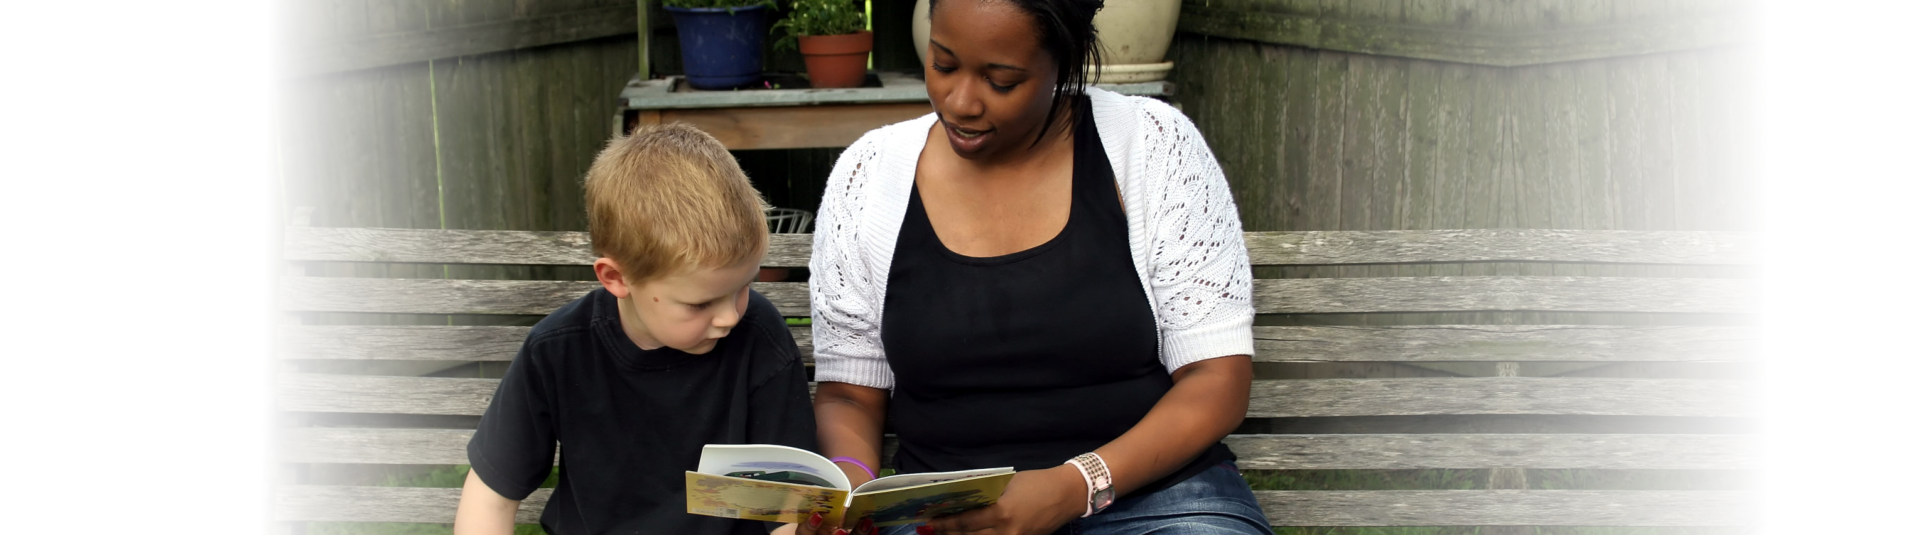 Woman is teaching the boy to read